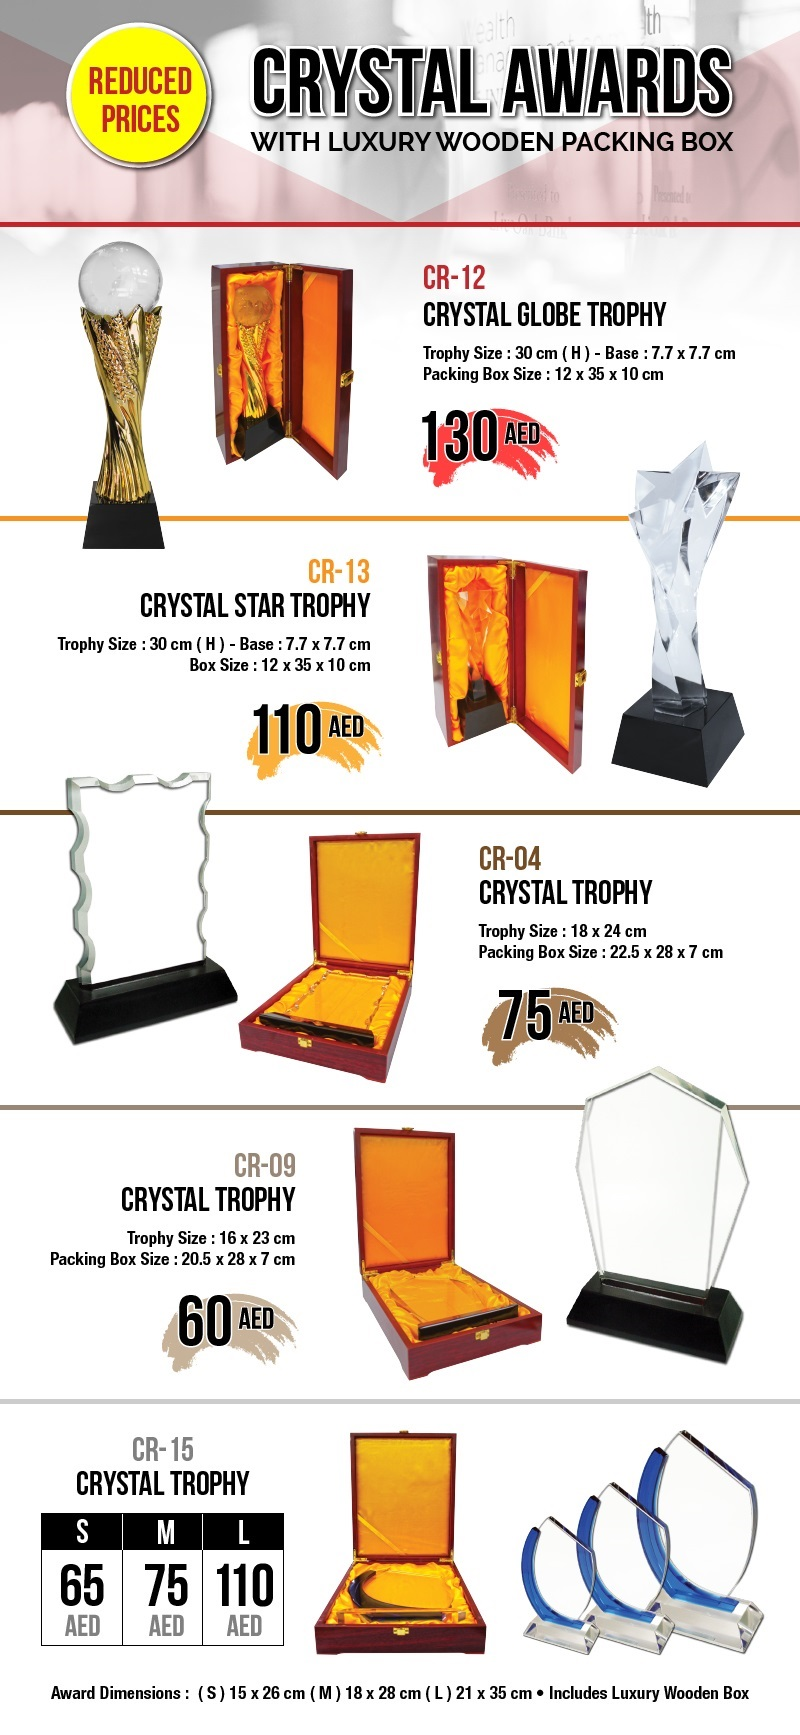 Crystal Awards with Reduced Prices